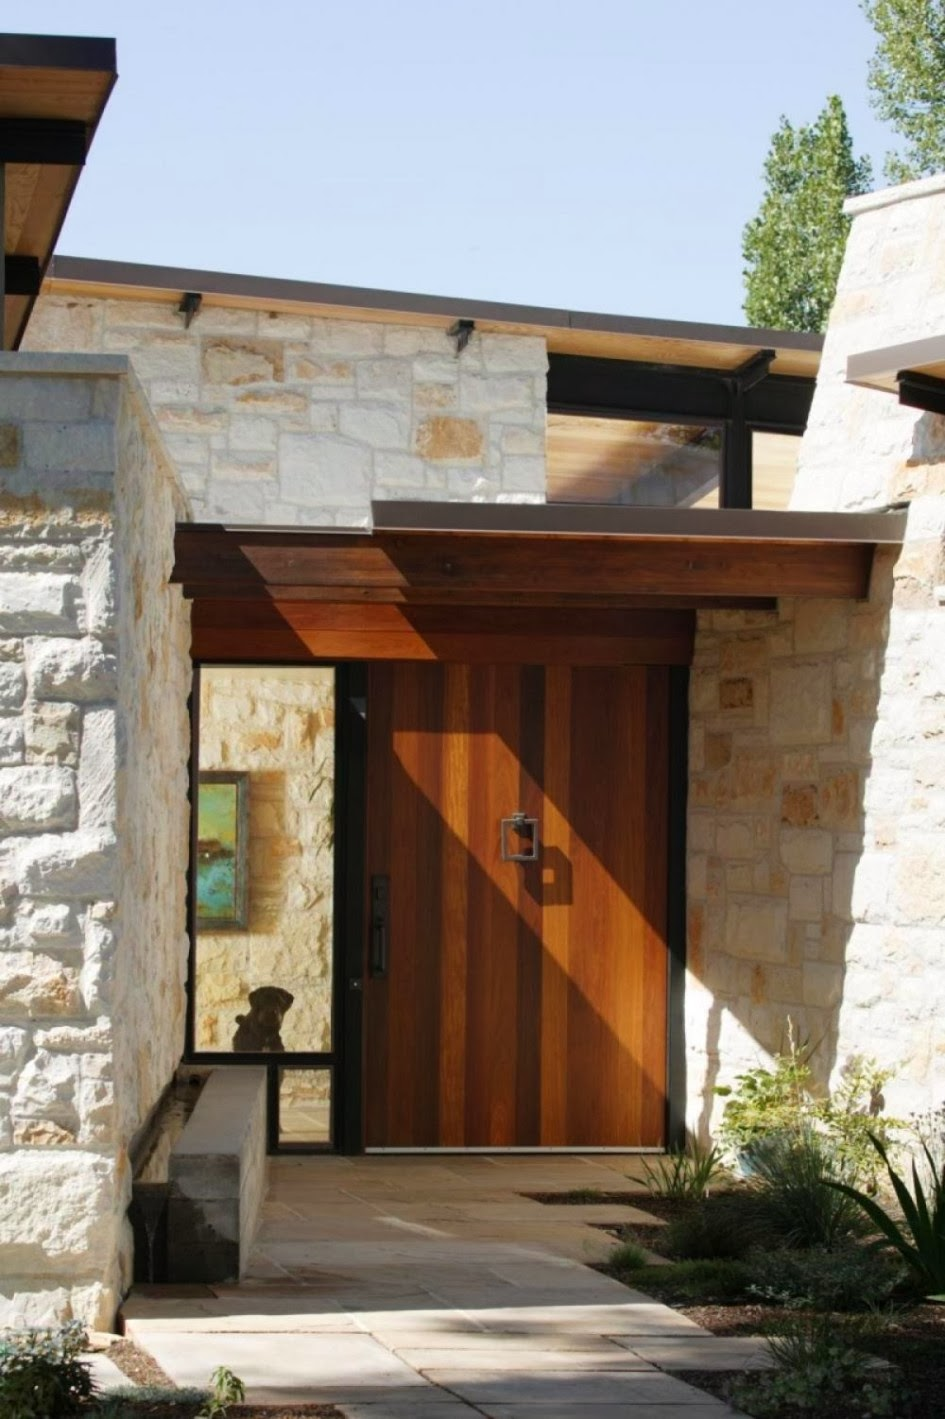 exterior design: Interior Exterior Gallery Modern Design ... on natural style homes, natural design homes, natural outdoor homes, natural wood homes, natural modern house, natural landscape homes, natural building homes,